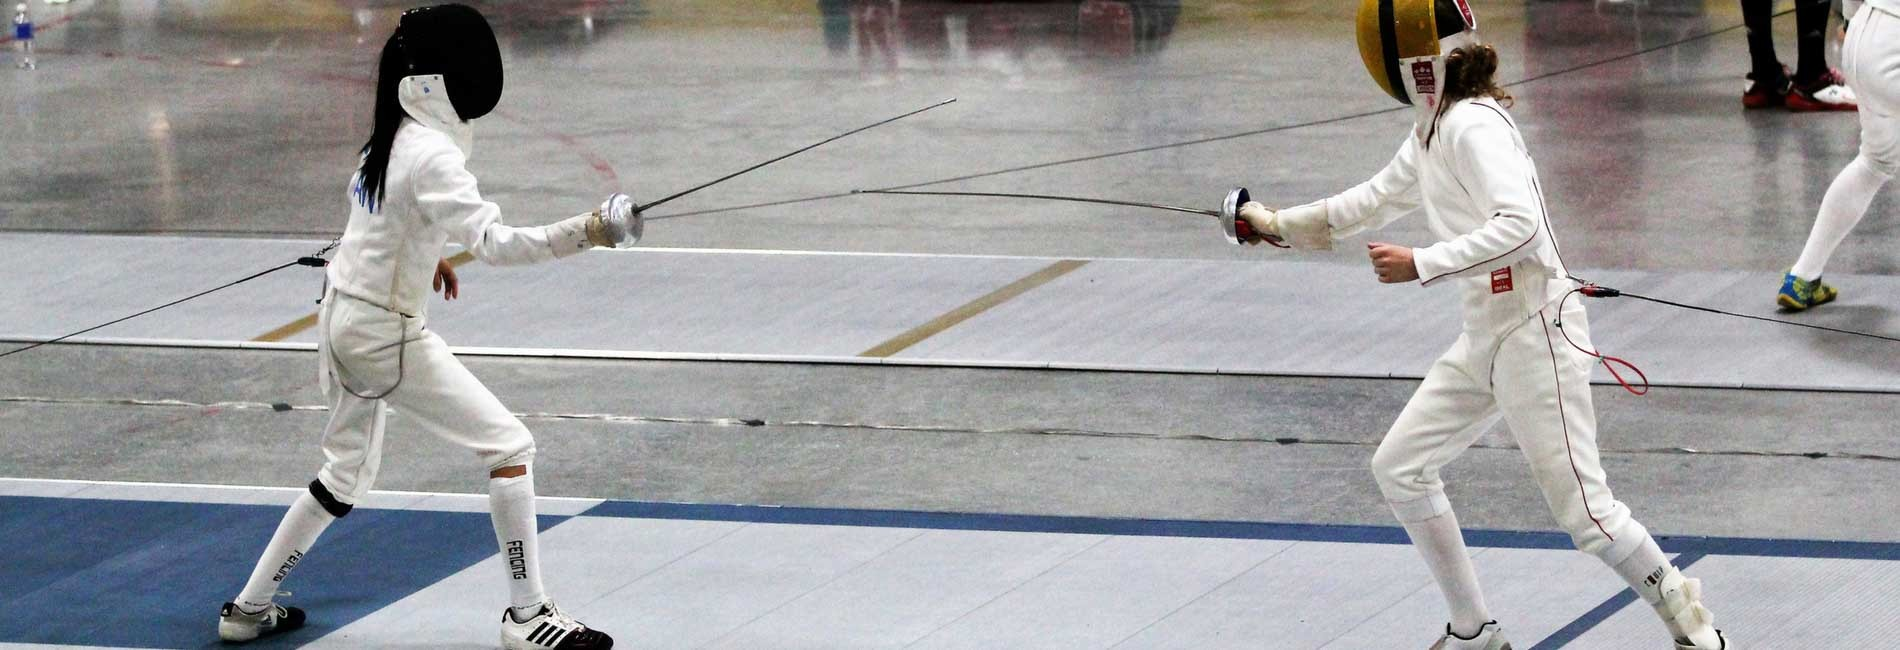 Standard swscd   fencing  1   activity banner image  1900x650